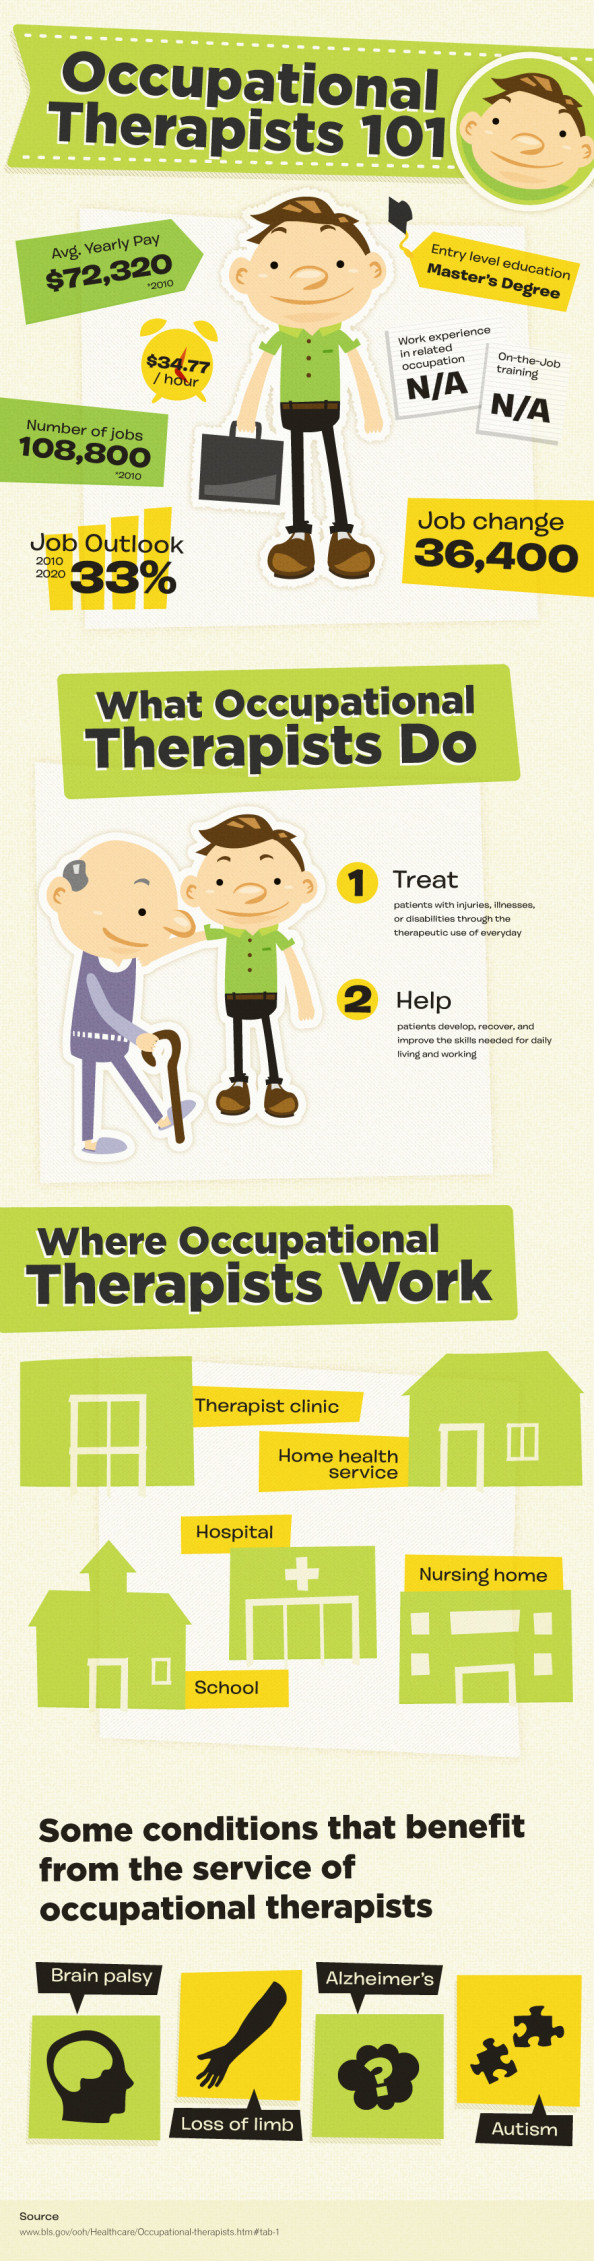 Occupational Therapists 101 Infographic